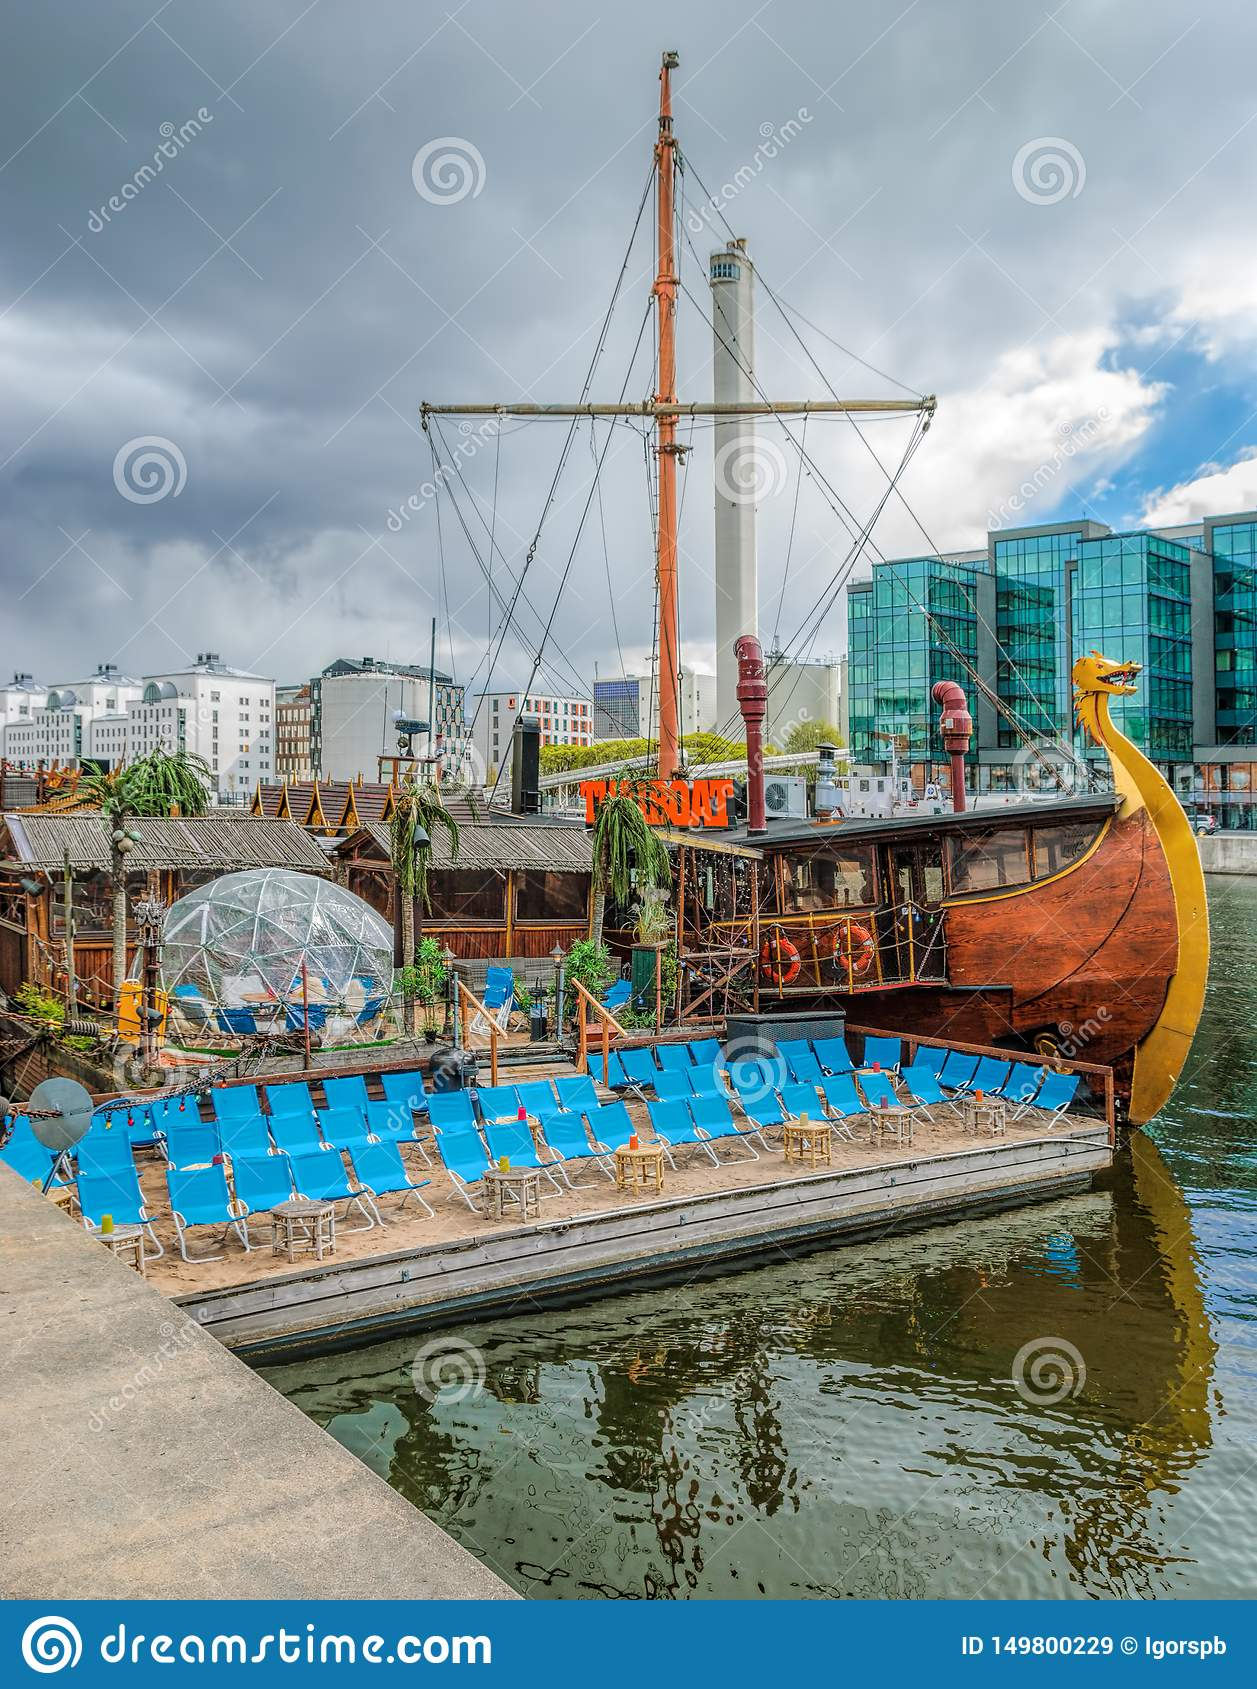 Floating thai restaurant THAIBOAT ih shape of vintage viking ship with own artificial mini beach on a raft on Hammarby canal.